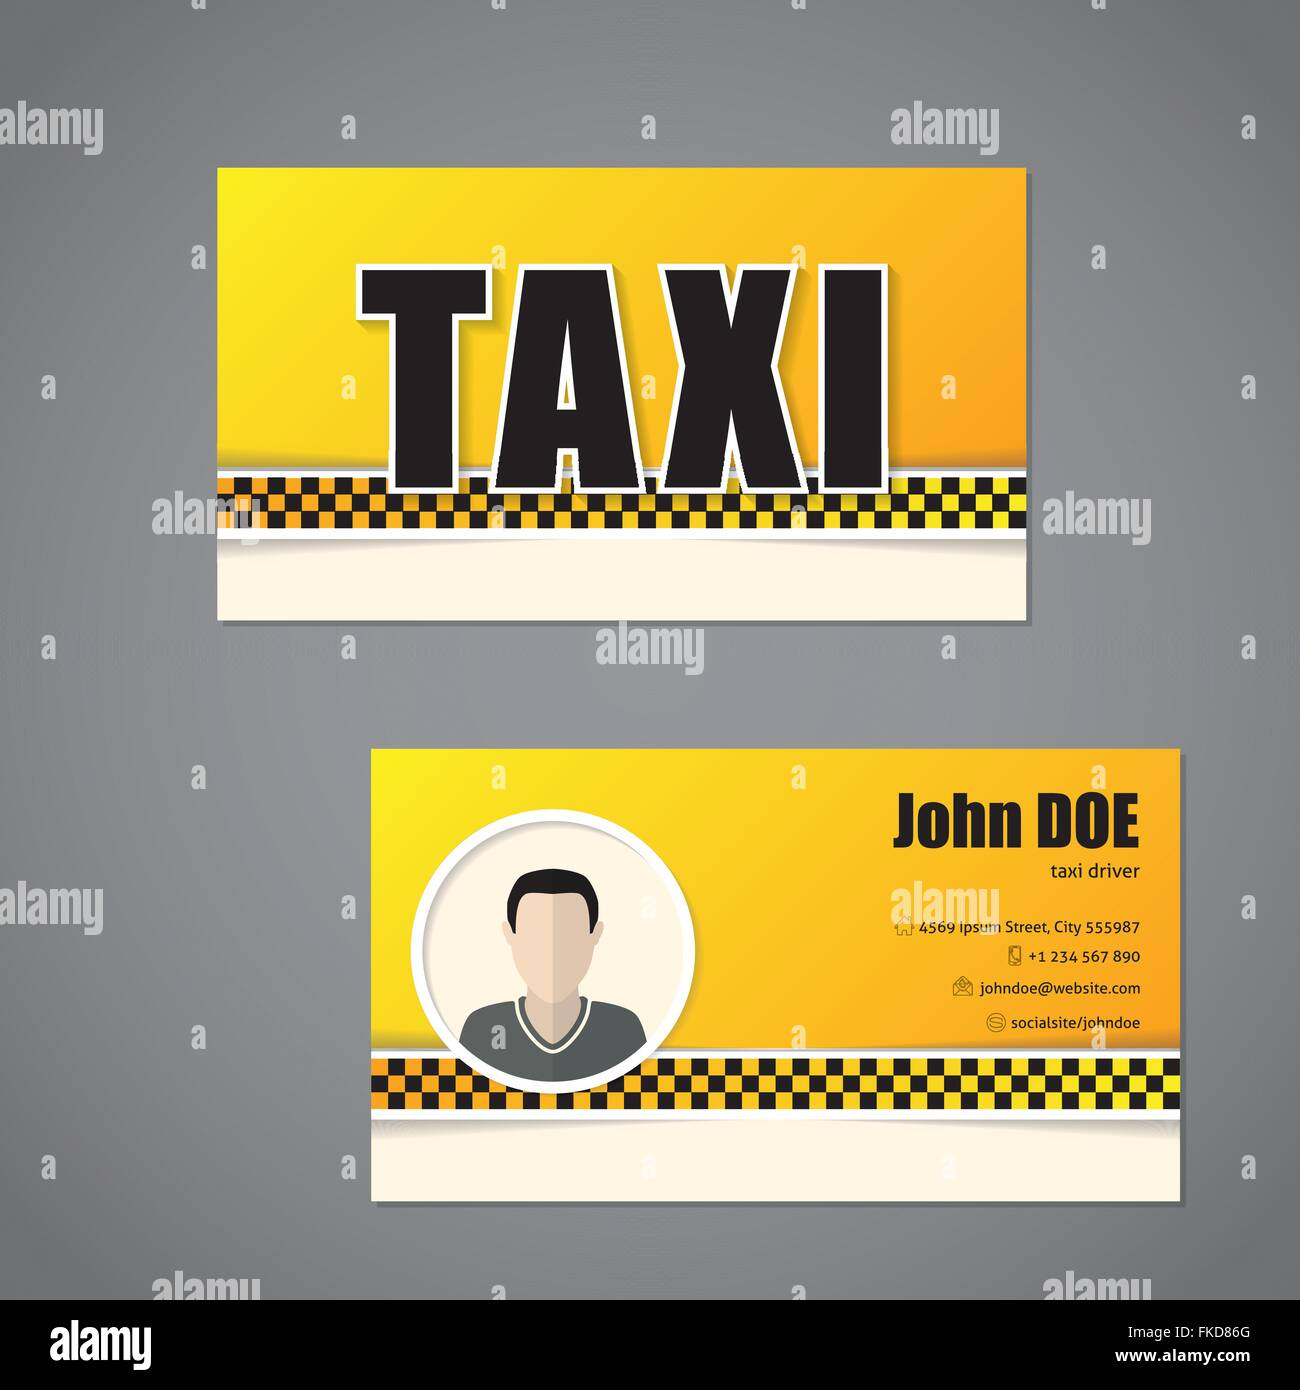 Taxi business card template design with driver photo on back Stock ...